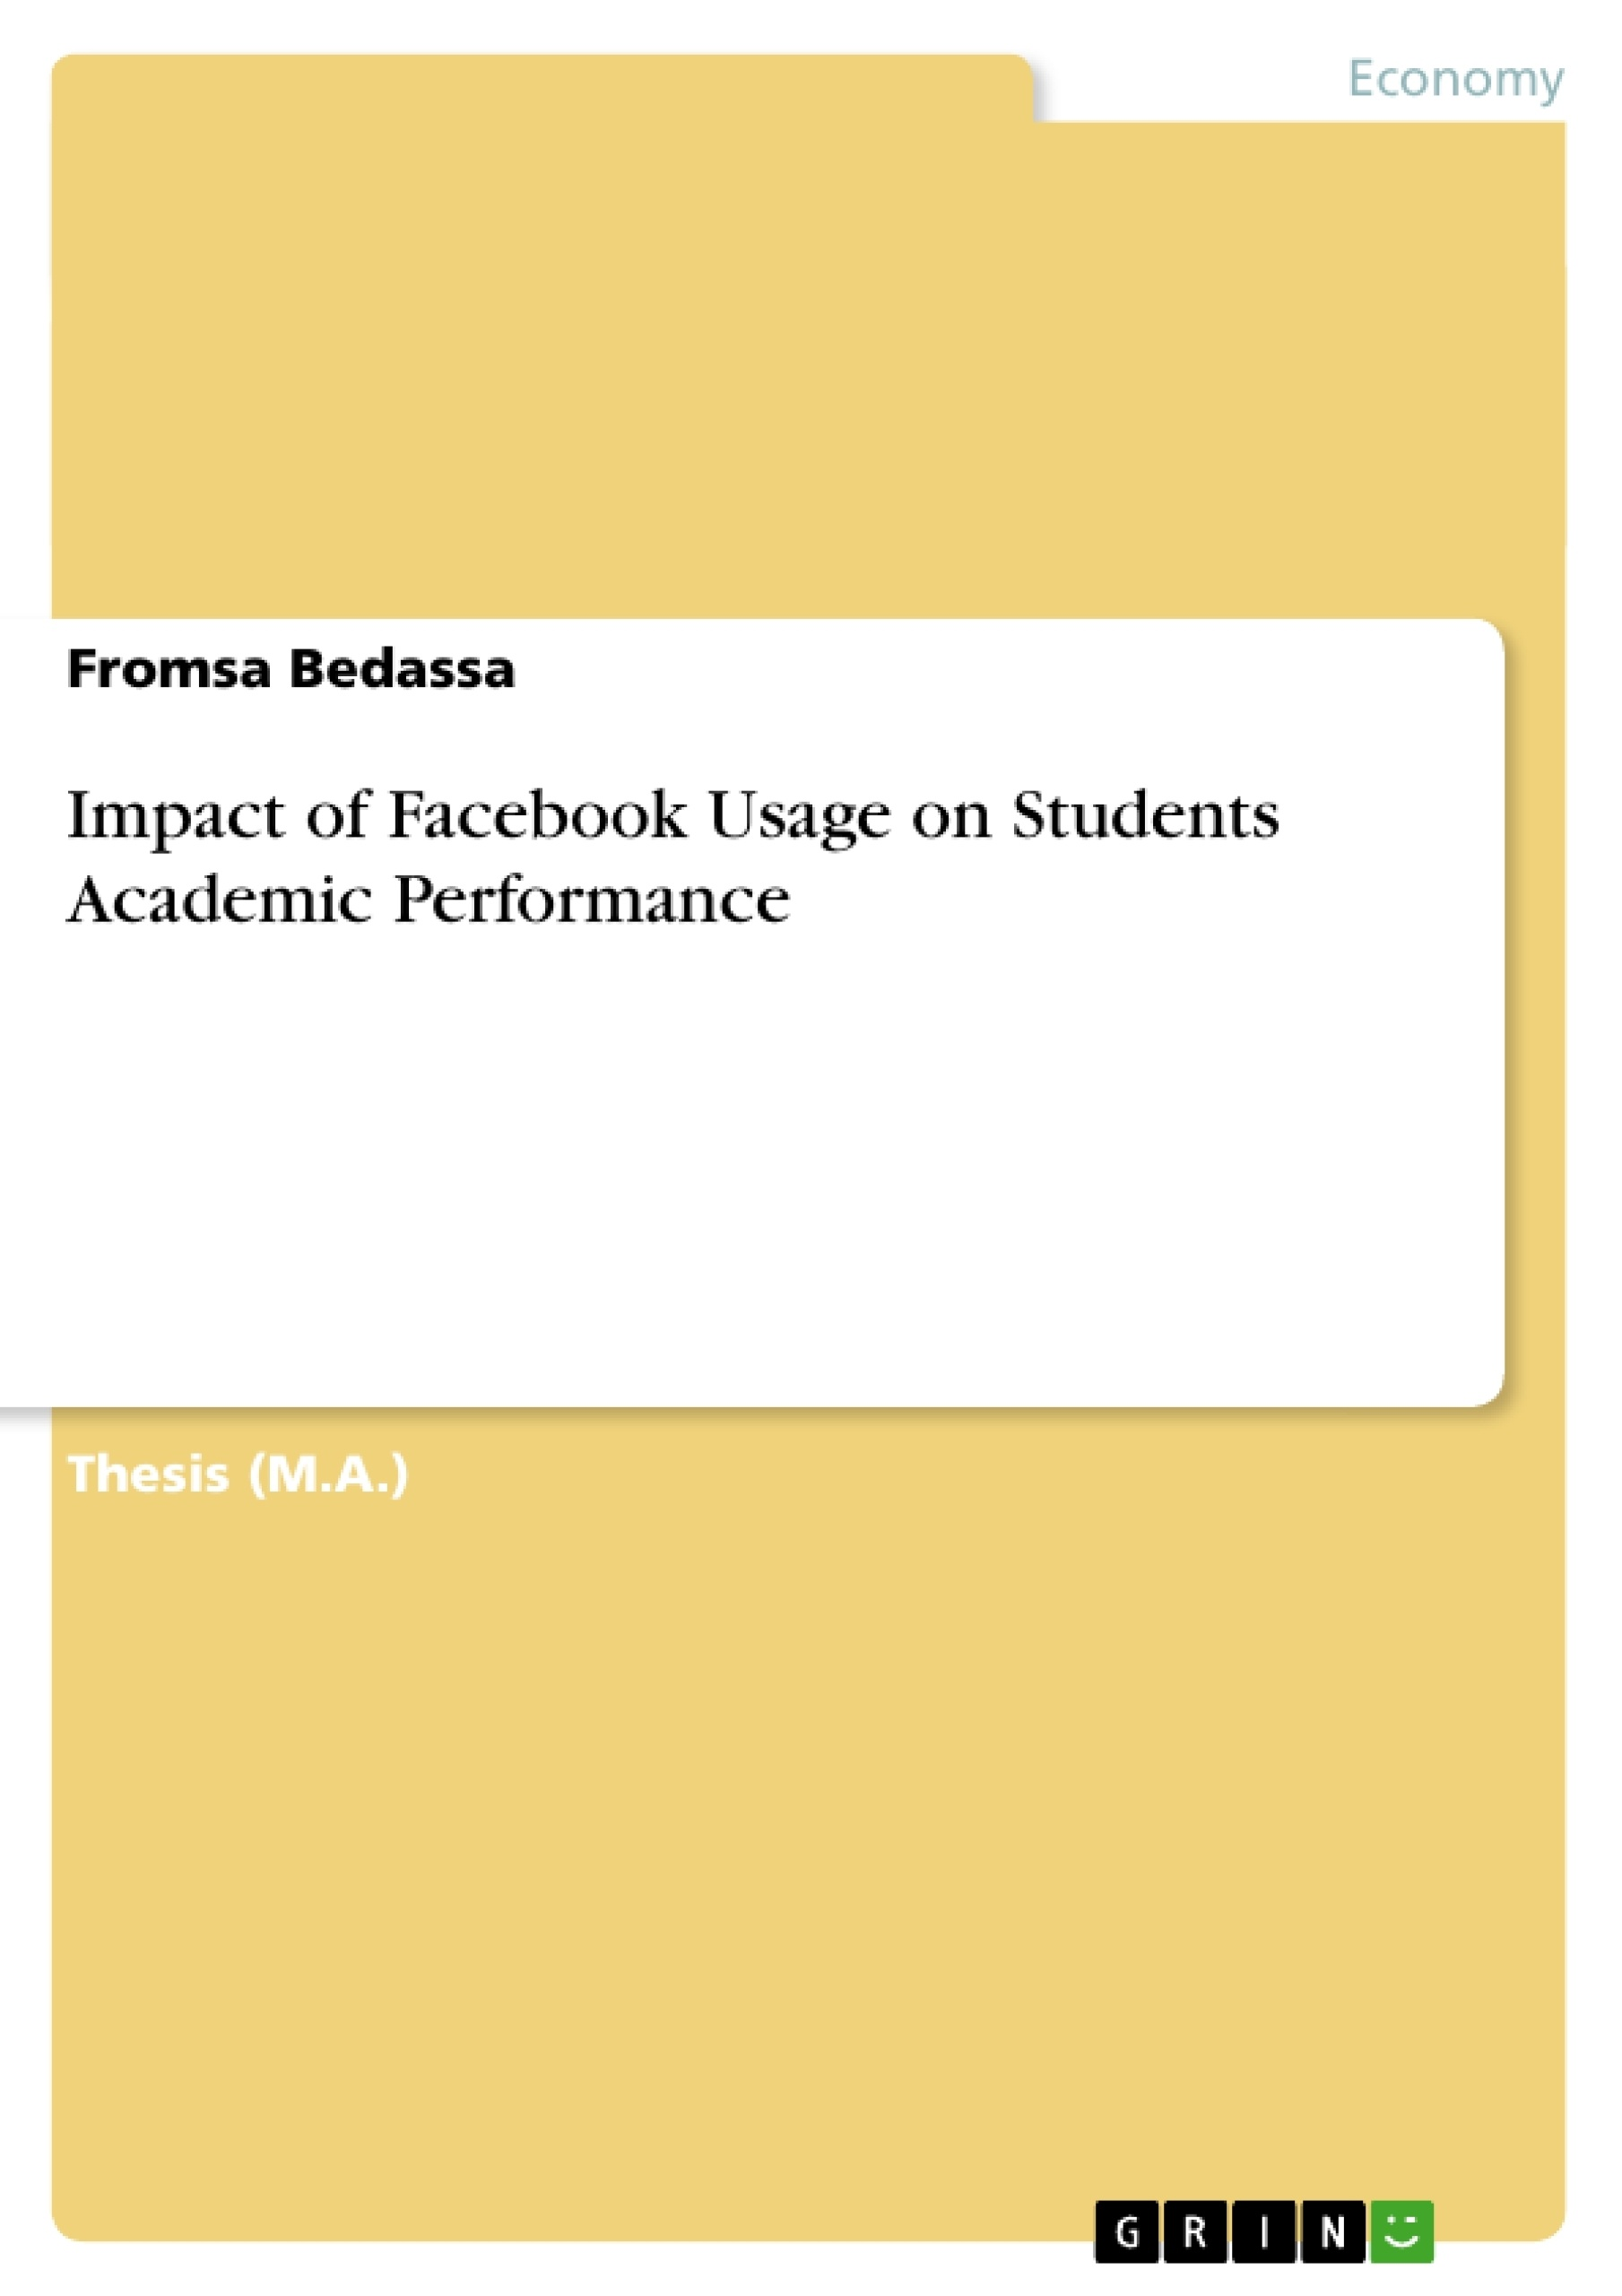 impact of facebook usage on students academic performance